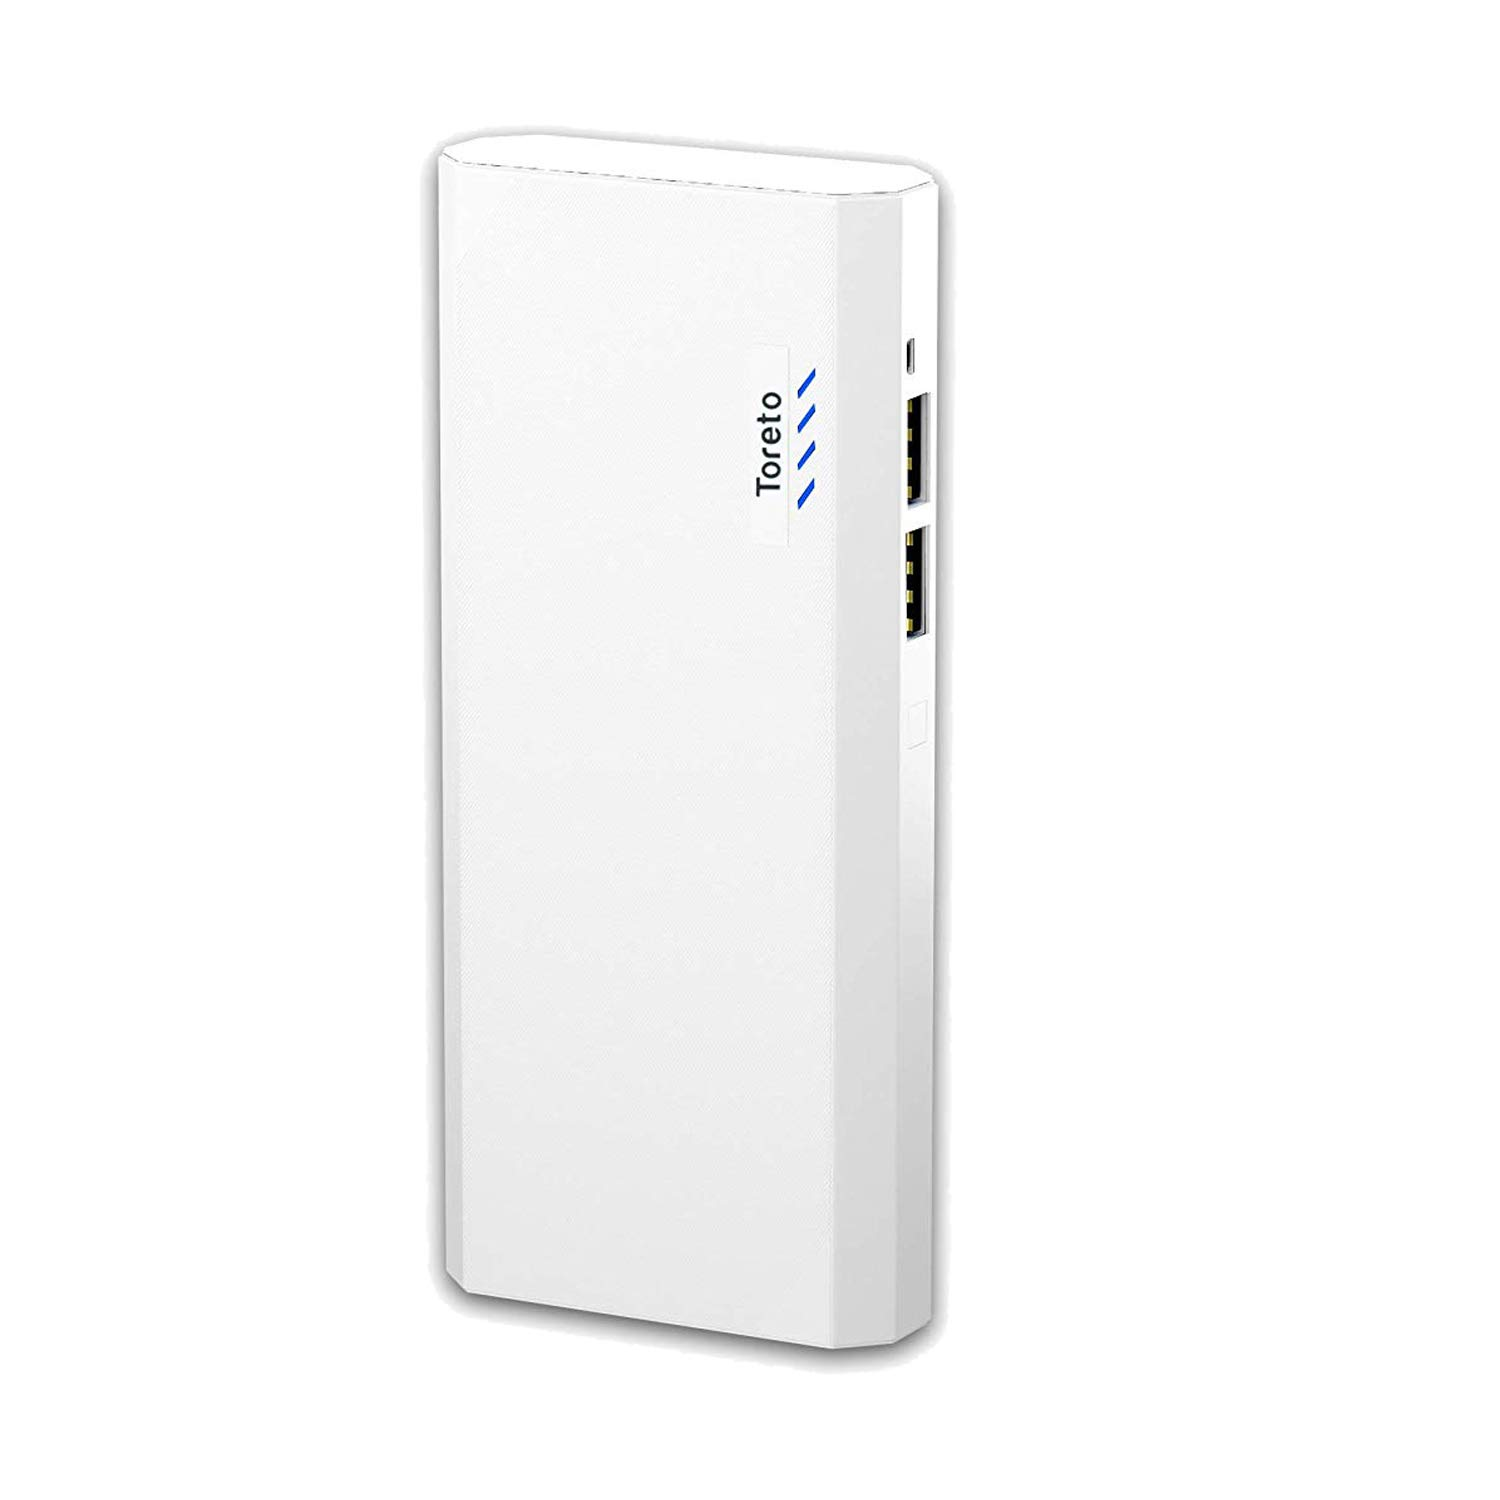 Toreto Power Charge 10000mah Lithium Polymer Powerbank for Smartphone, Ipad and Tablets (White, TOR-33)